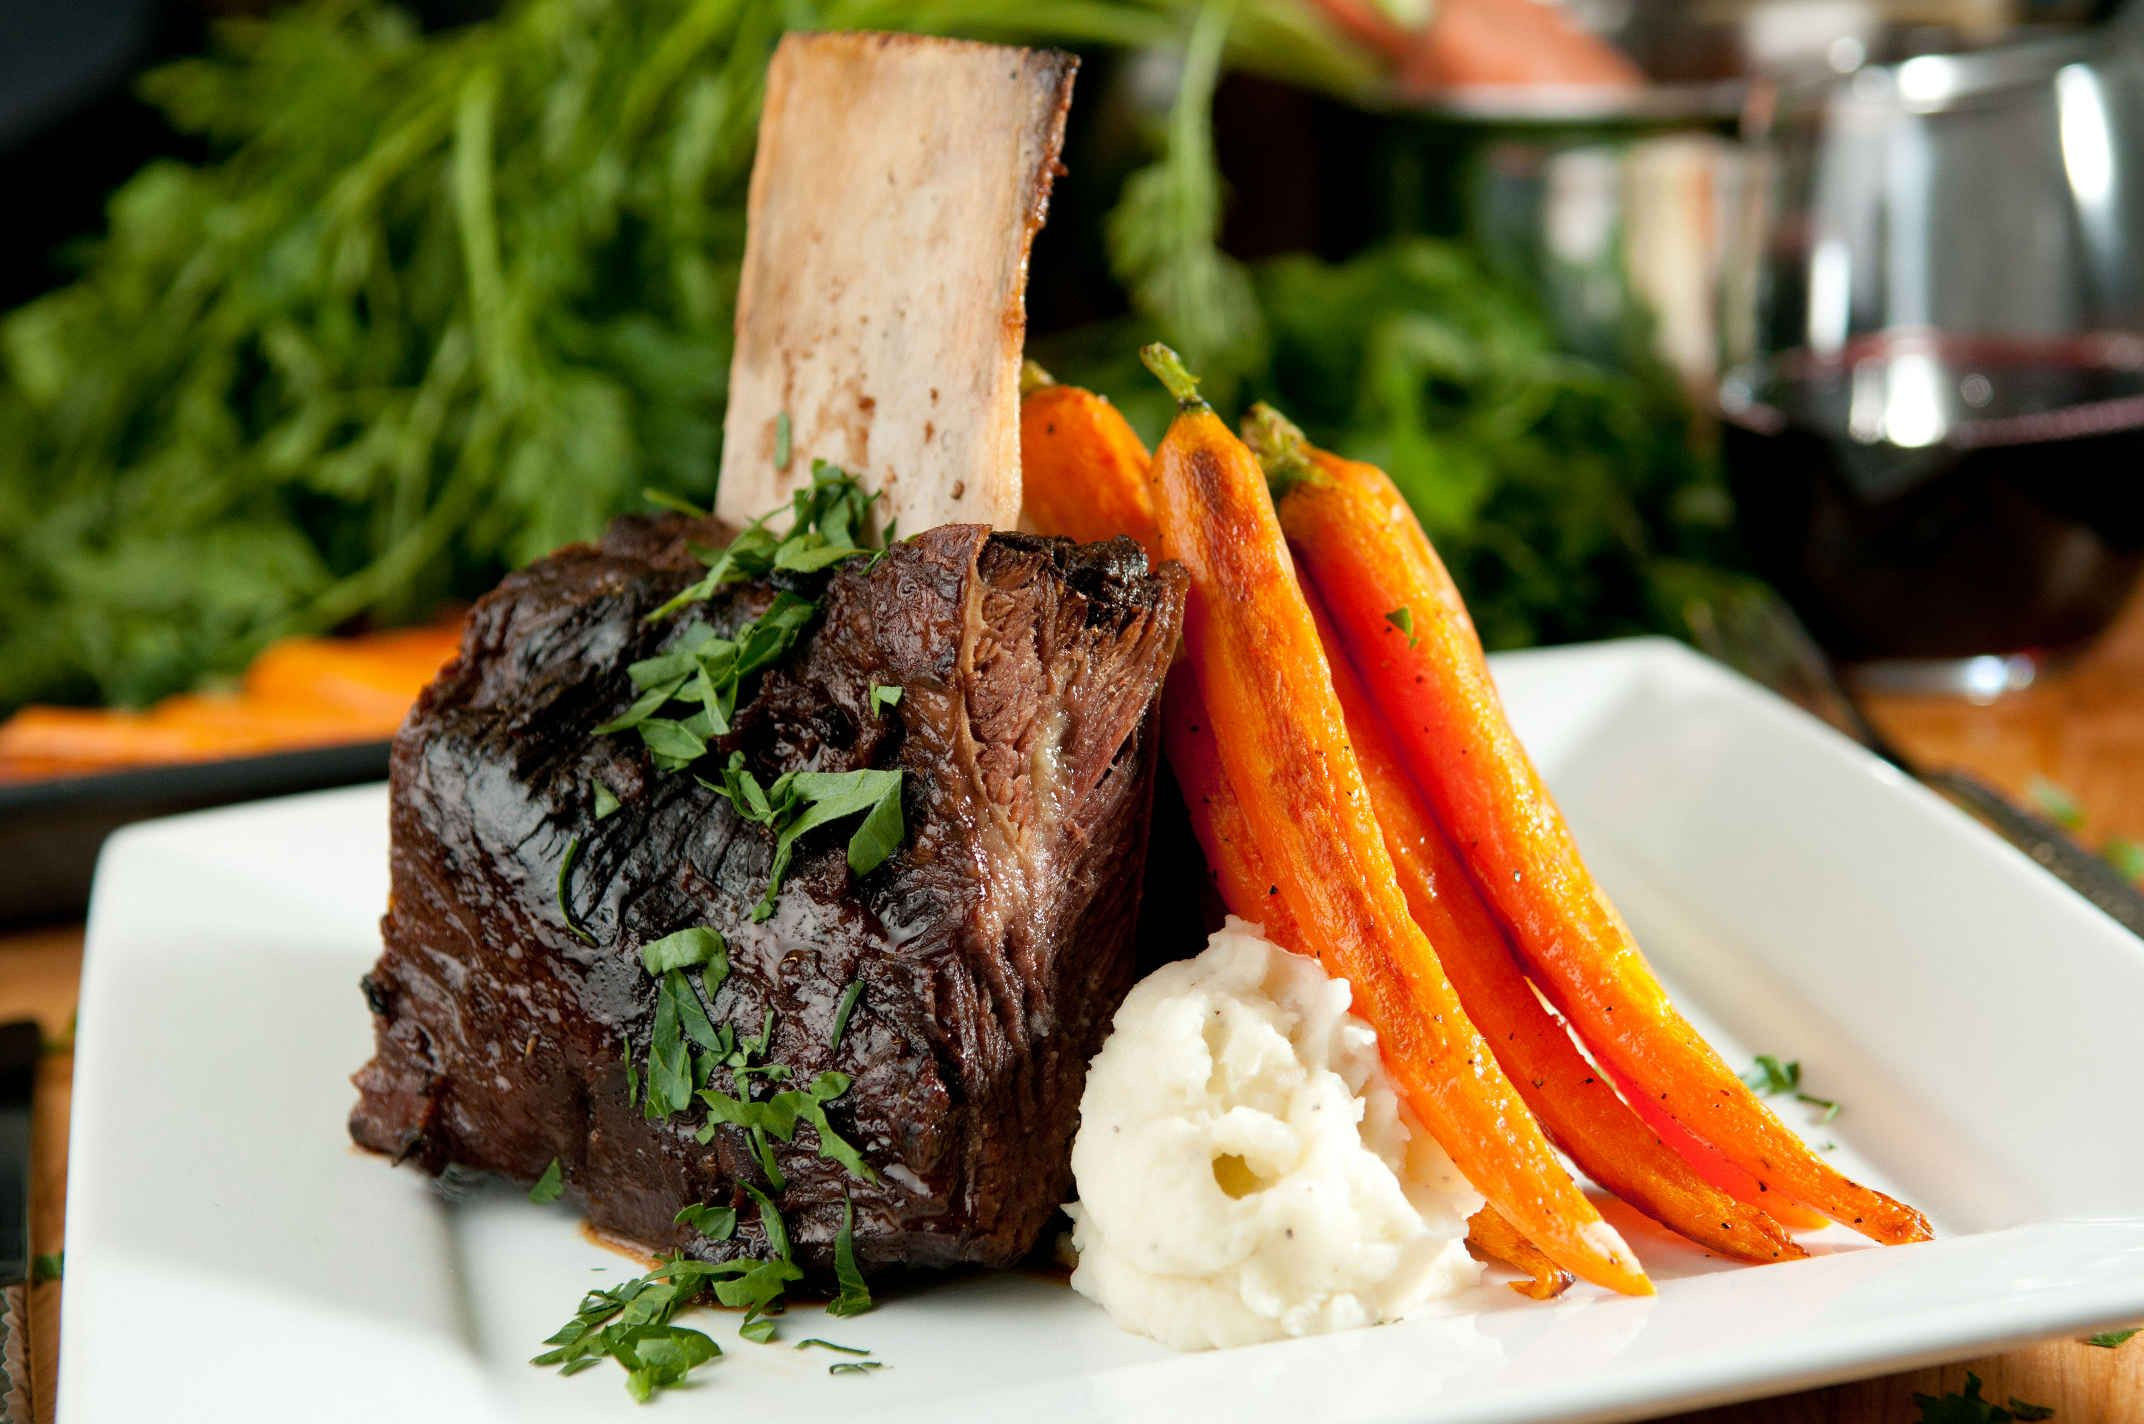 Sous Vide Everything Mashed Potatoes  Sous Vide Short Ribs With Garlic Mashed Potatoes and